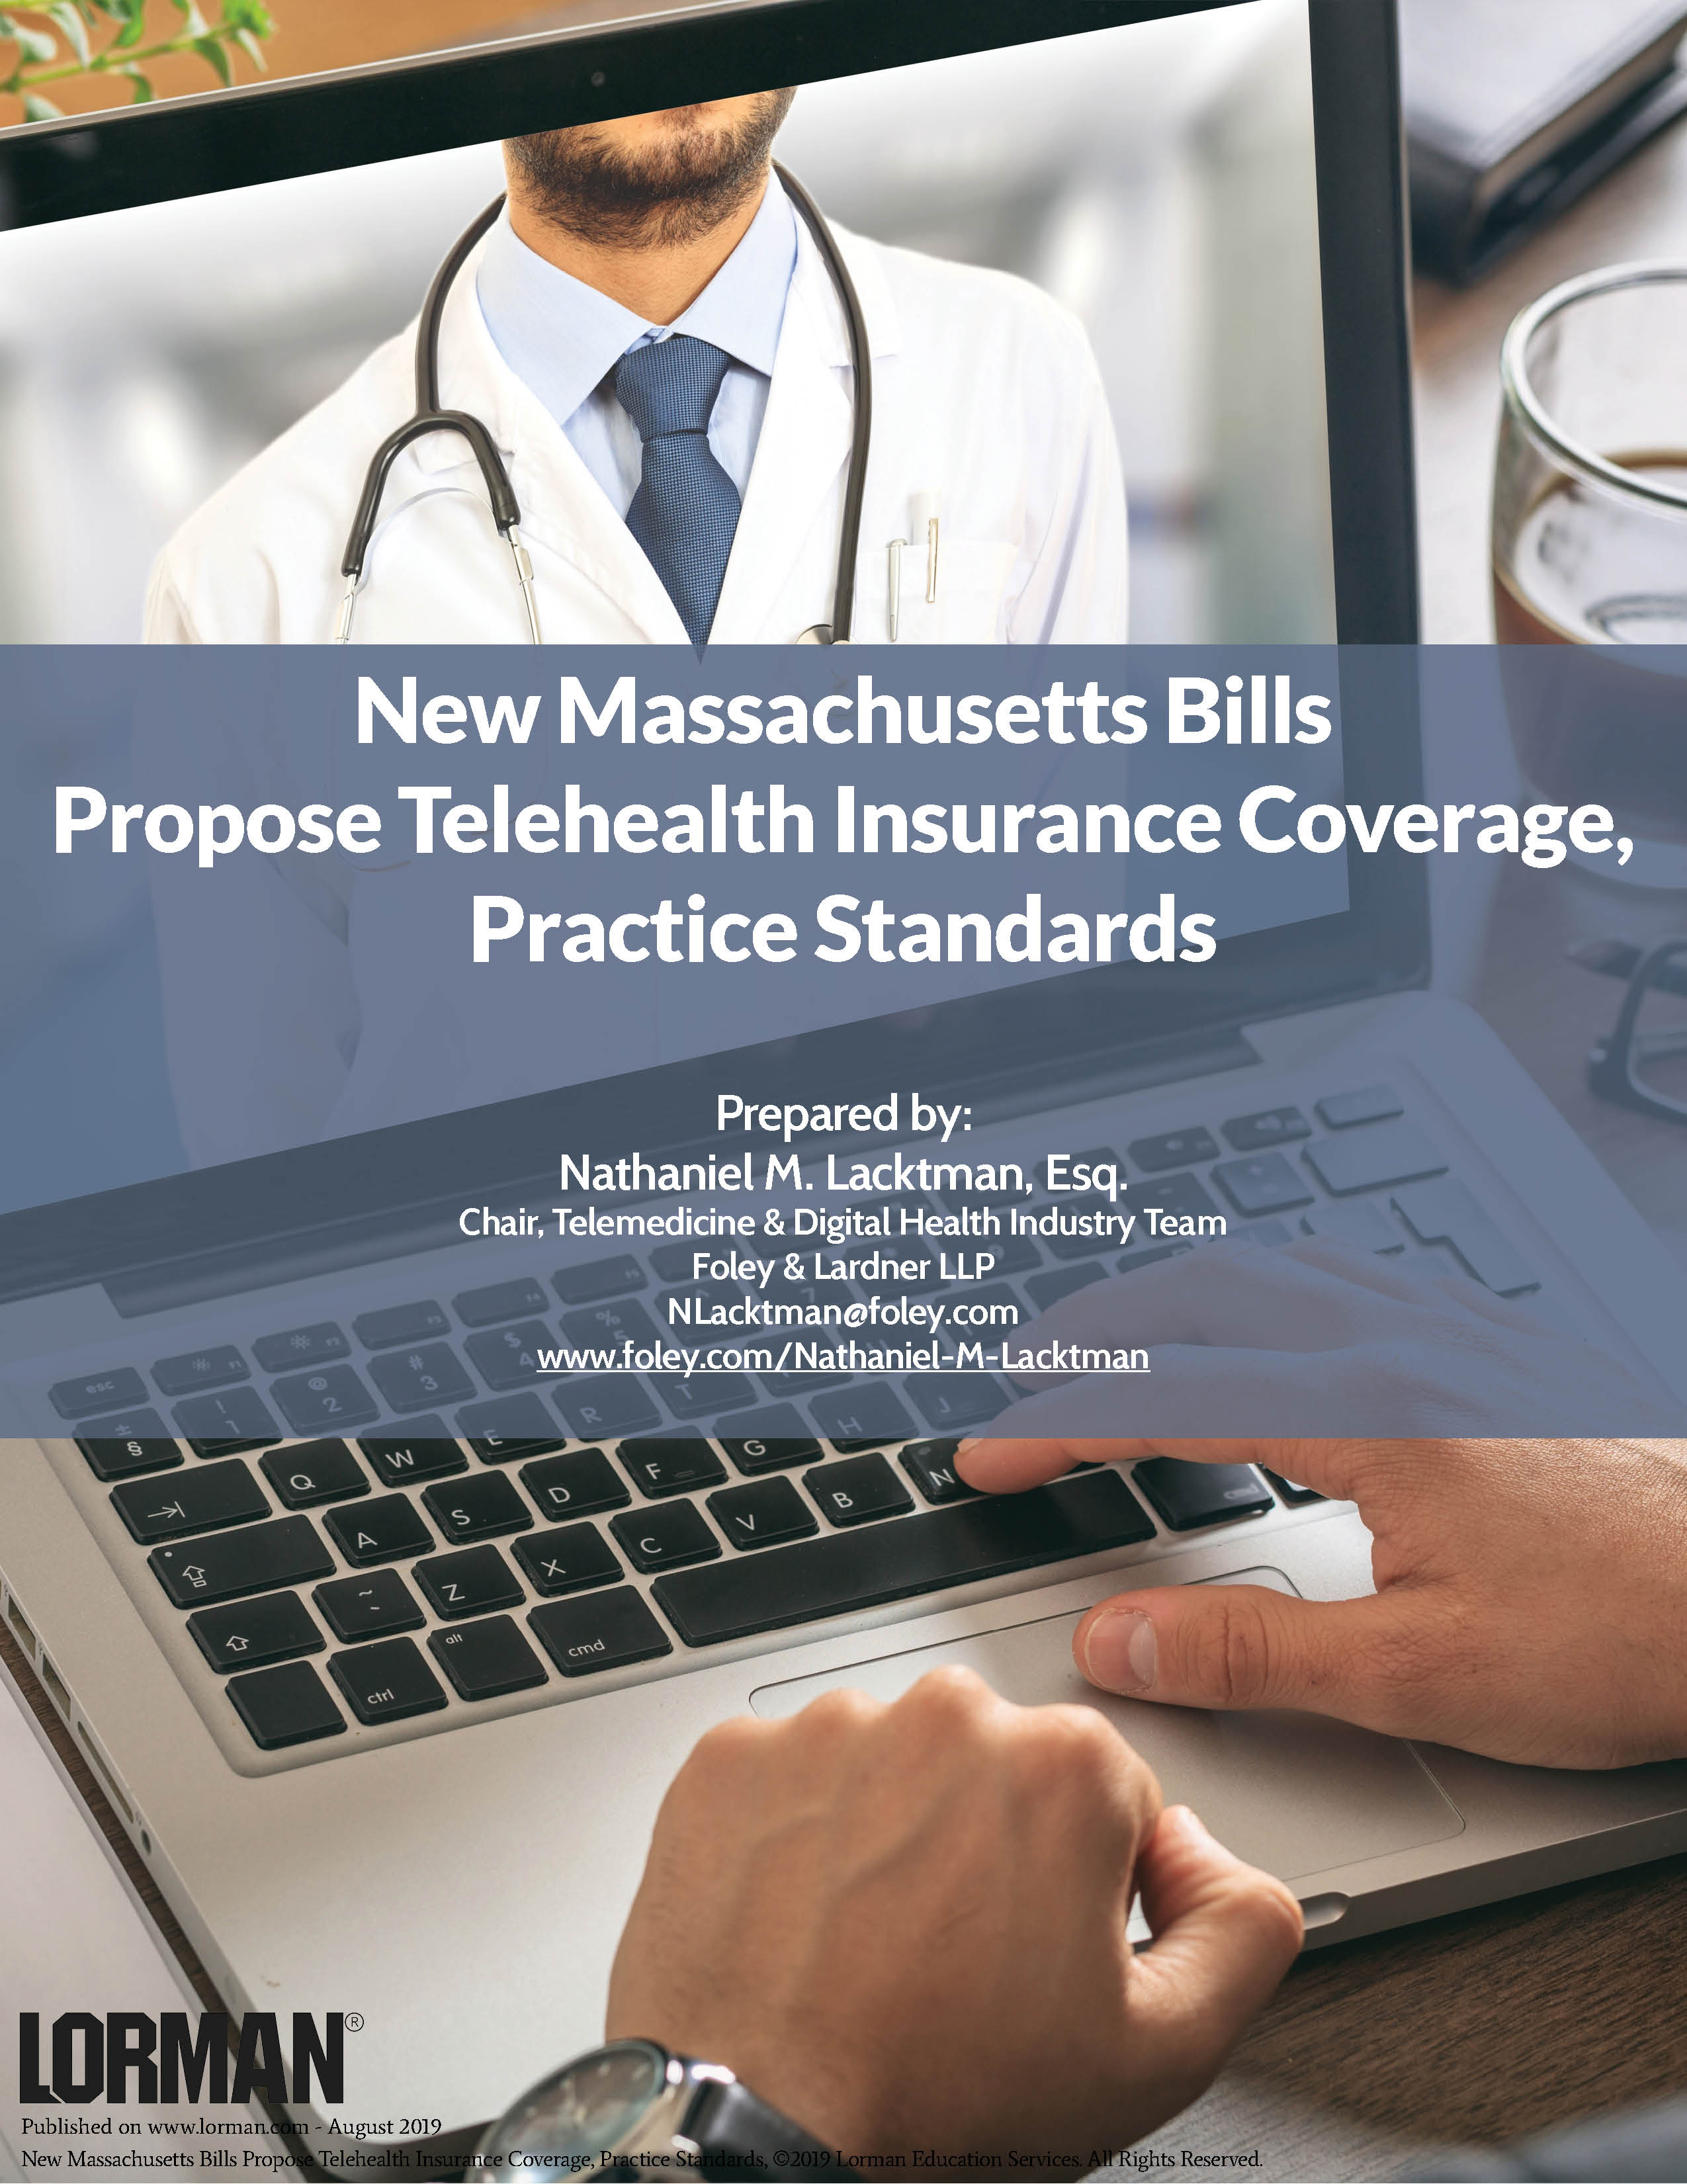 New Massachusetts Bills Propose Telehealth Insurance Coverage, Practice Standards